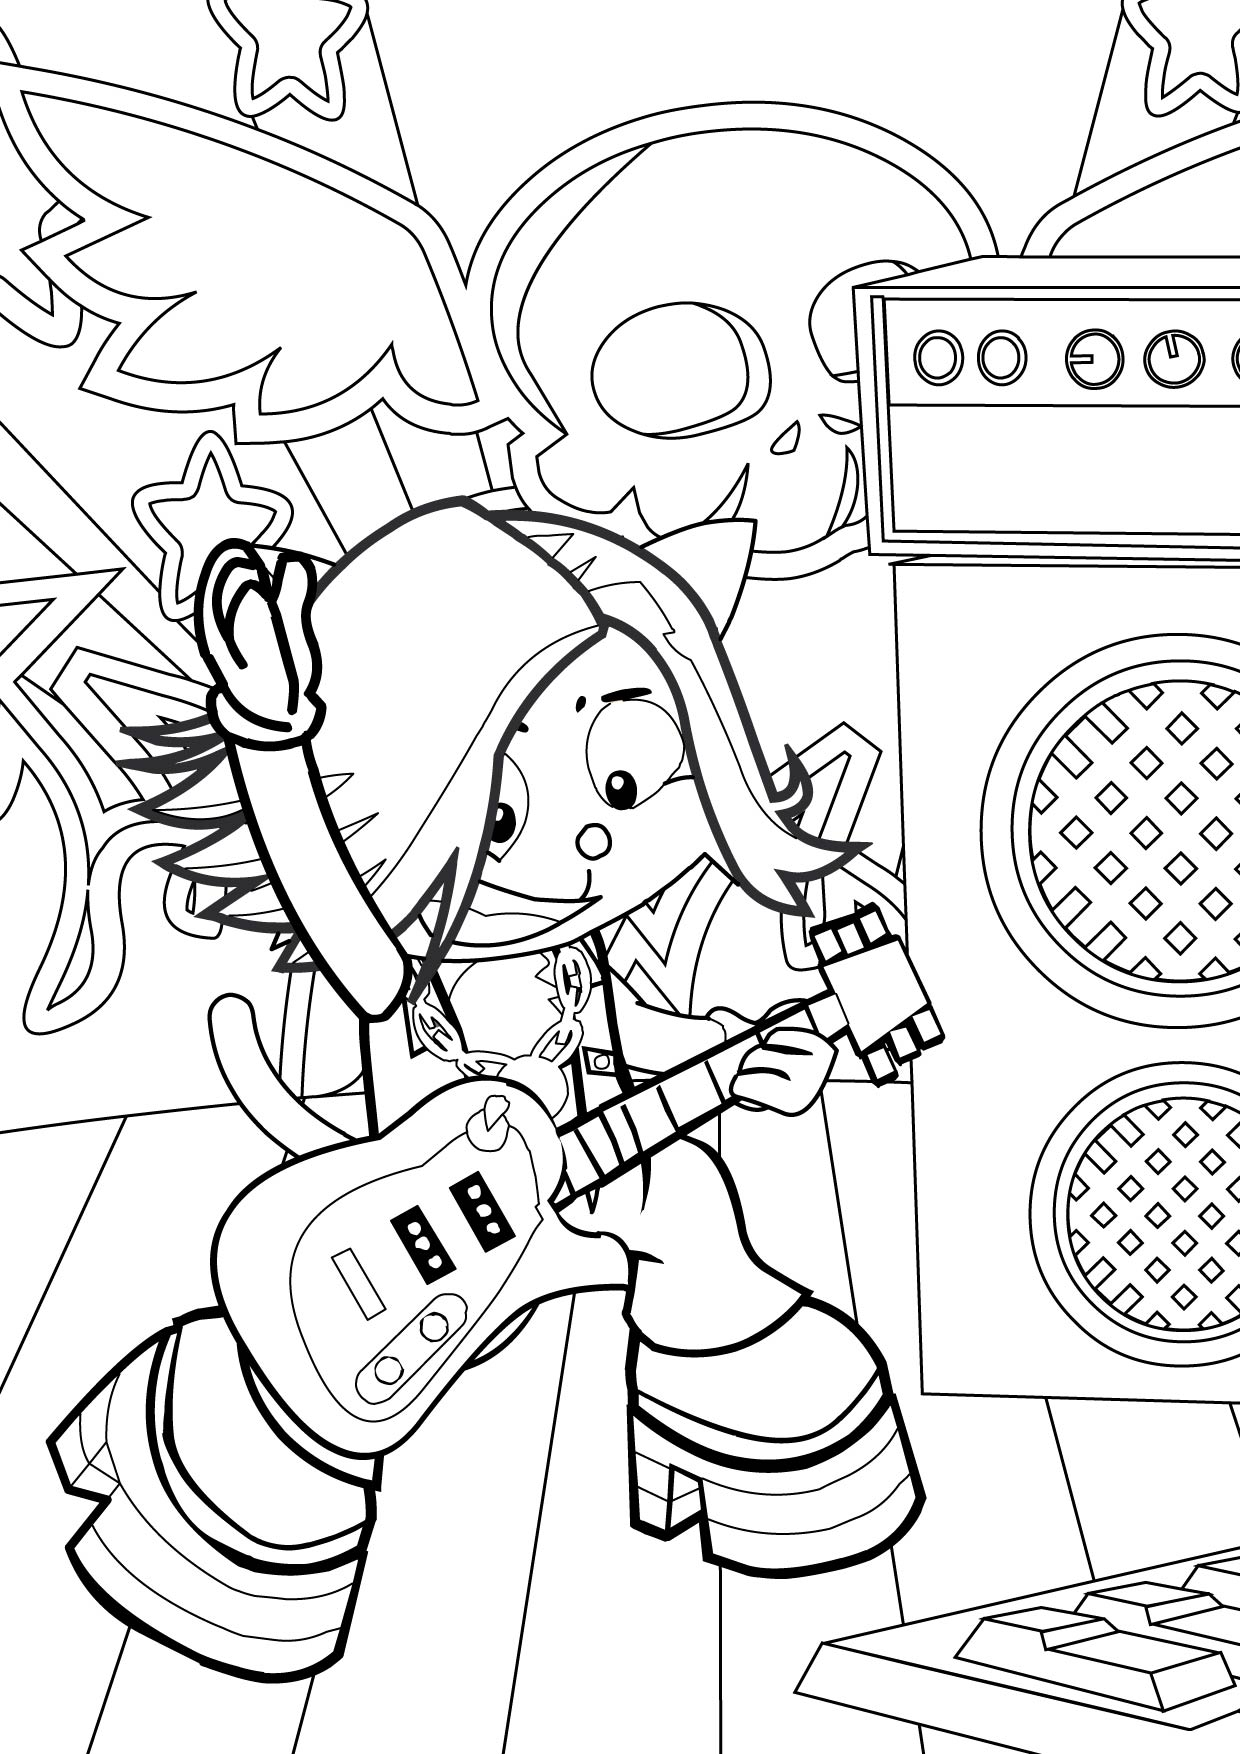 rock star coloring page handipoints